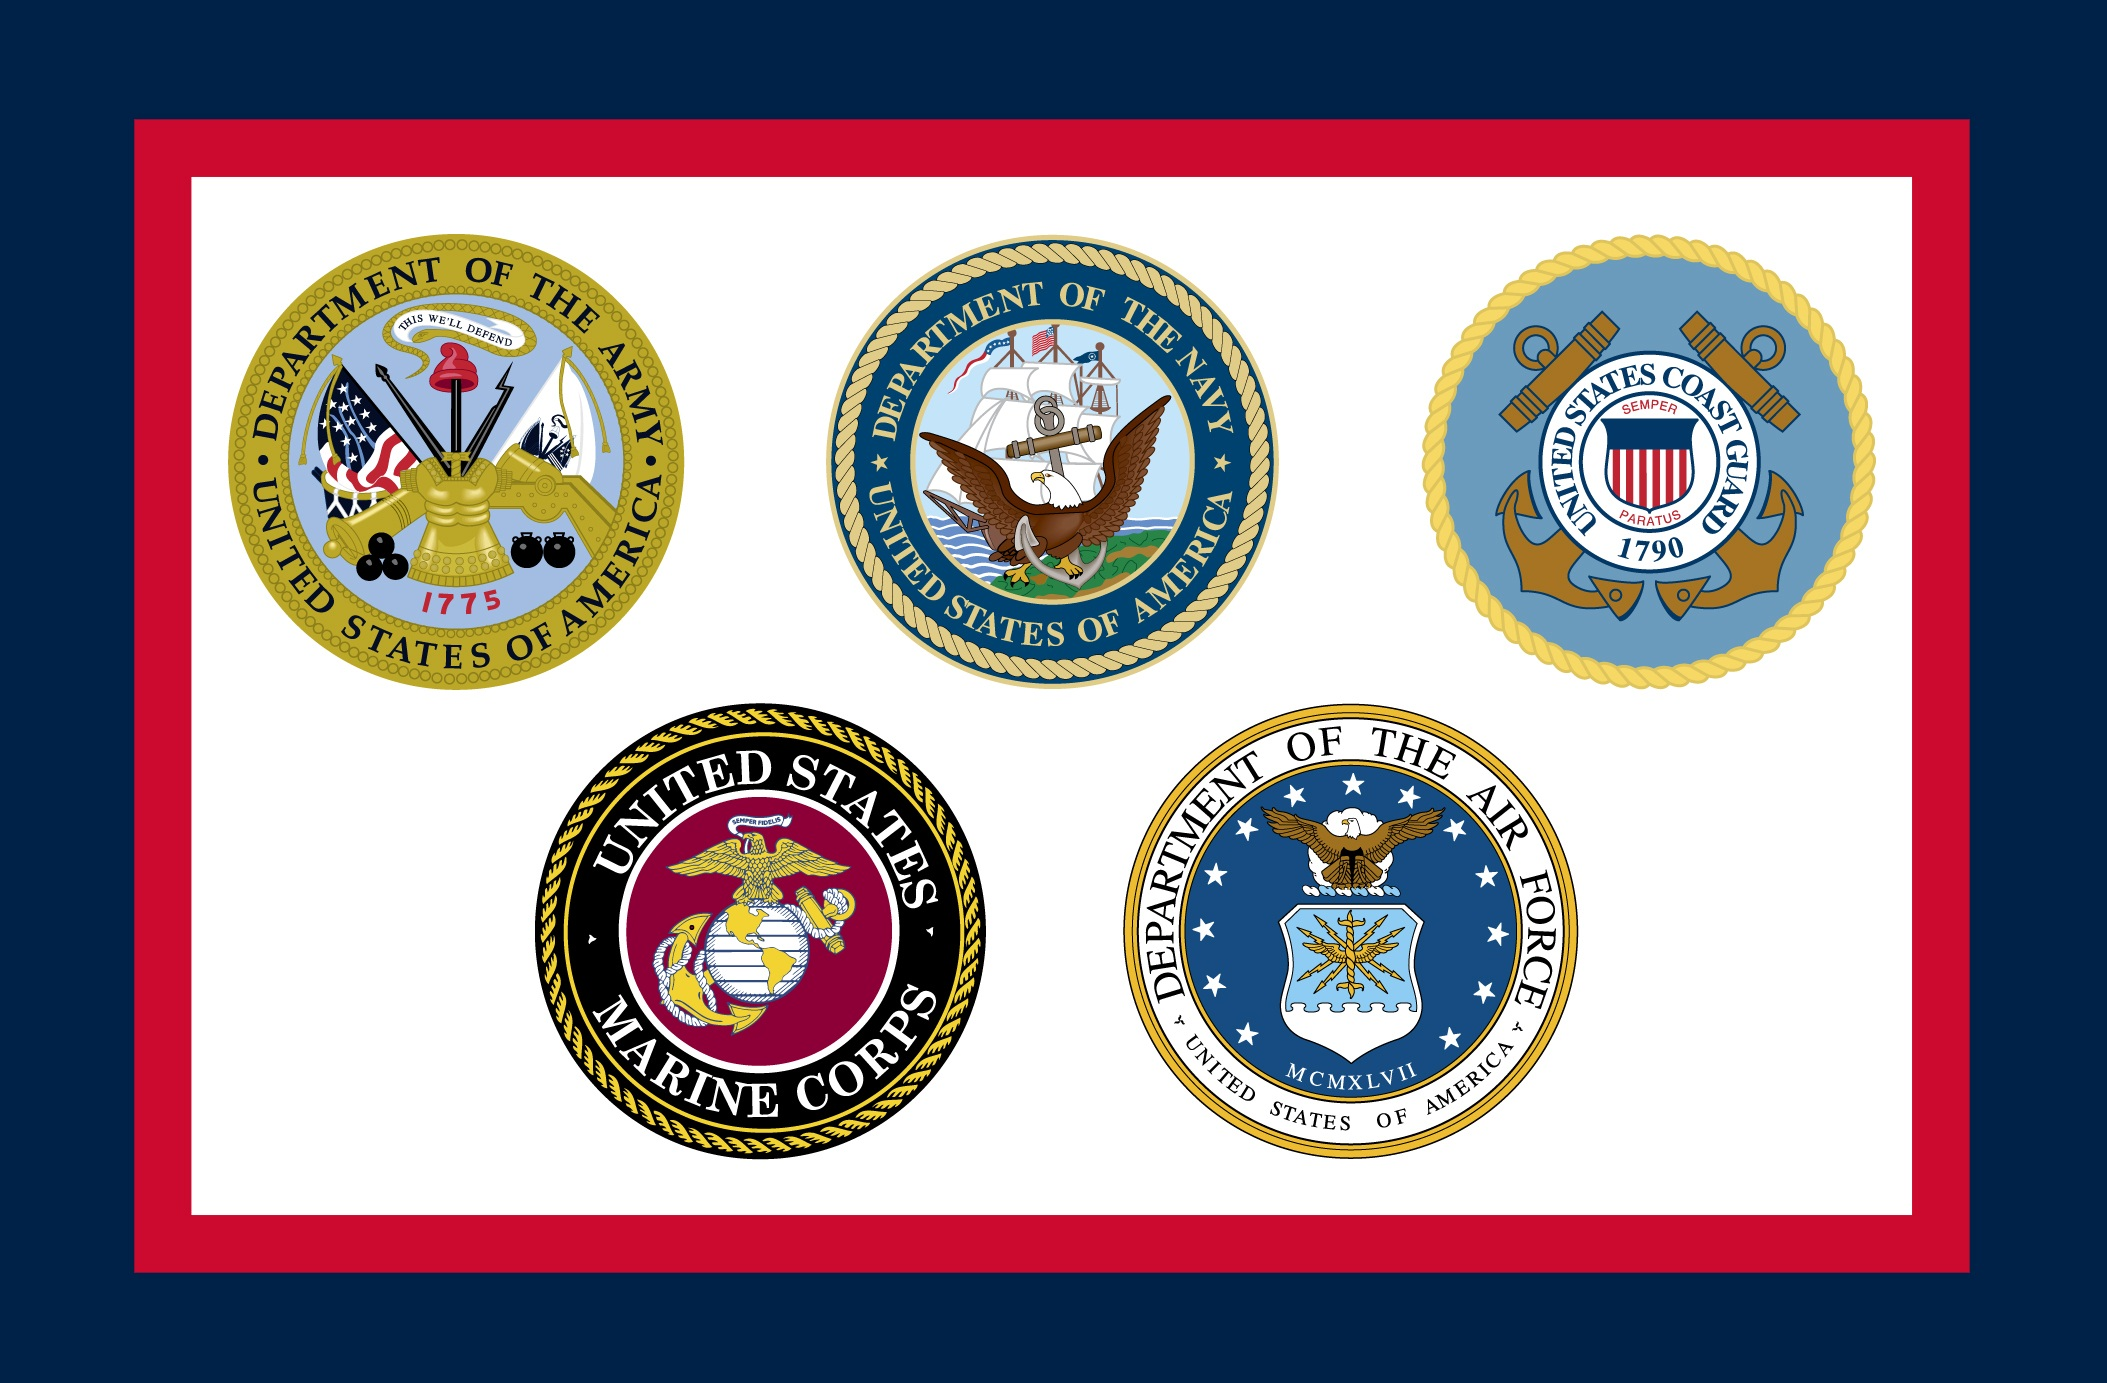 Armed forces clipart free picture freeuse library Free Armed Forces Cliparts, Download Free Clip Art, Free Clip Art on ... picture freeuse library